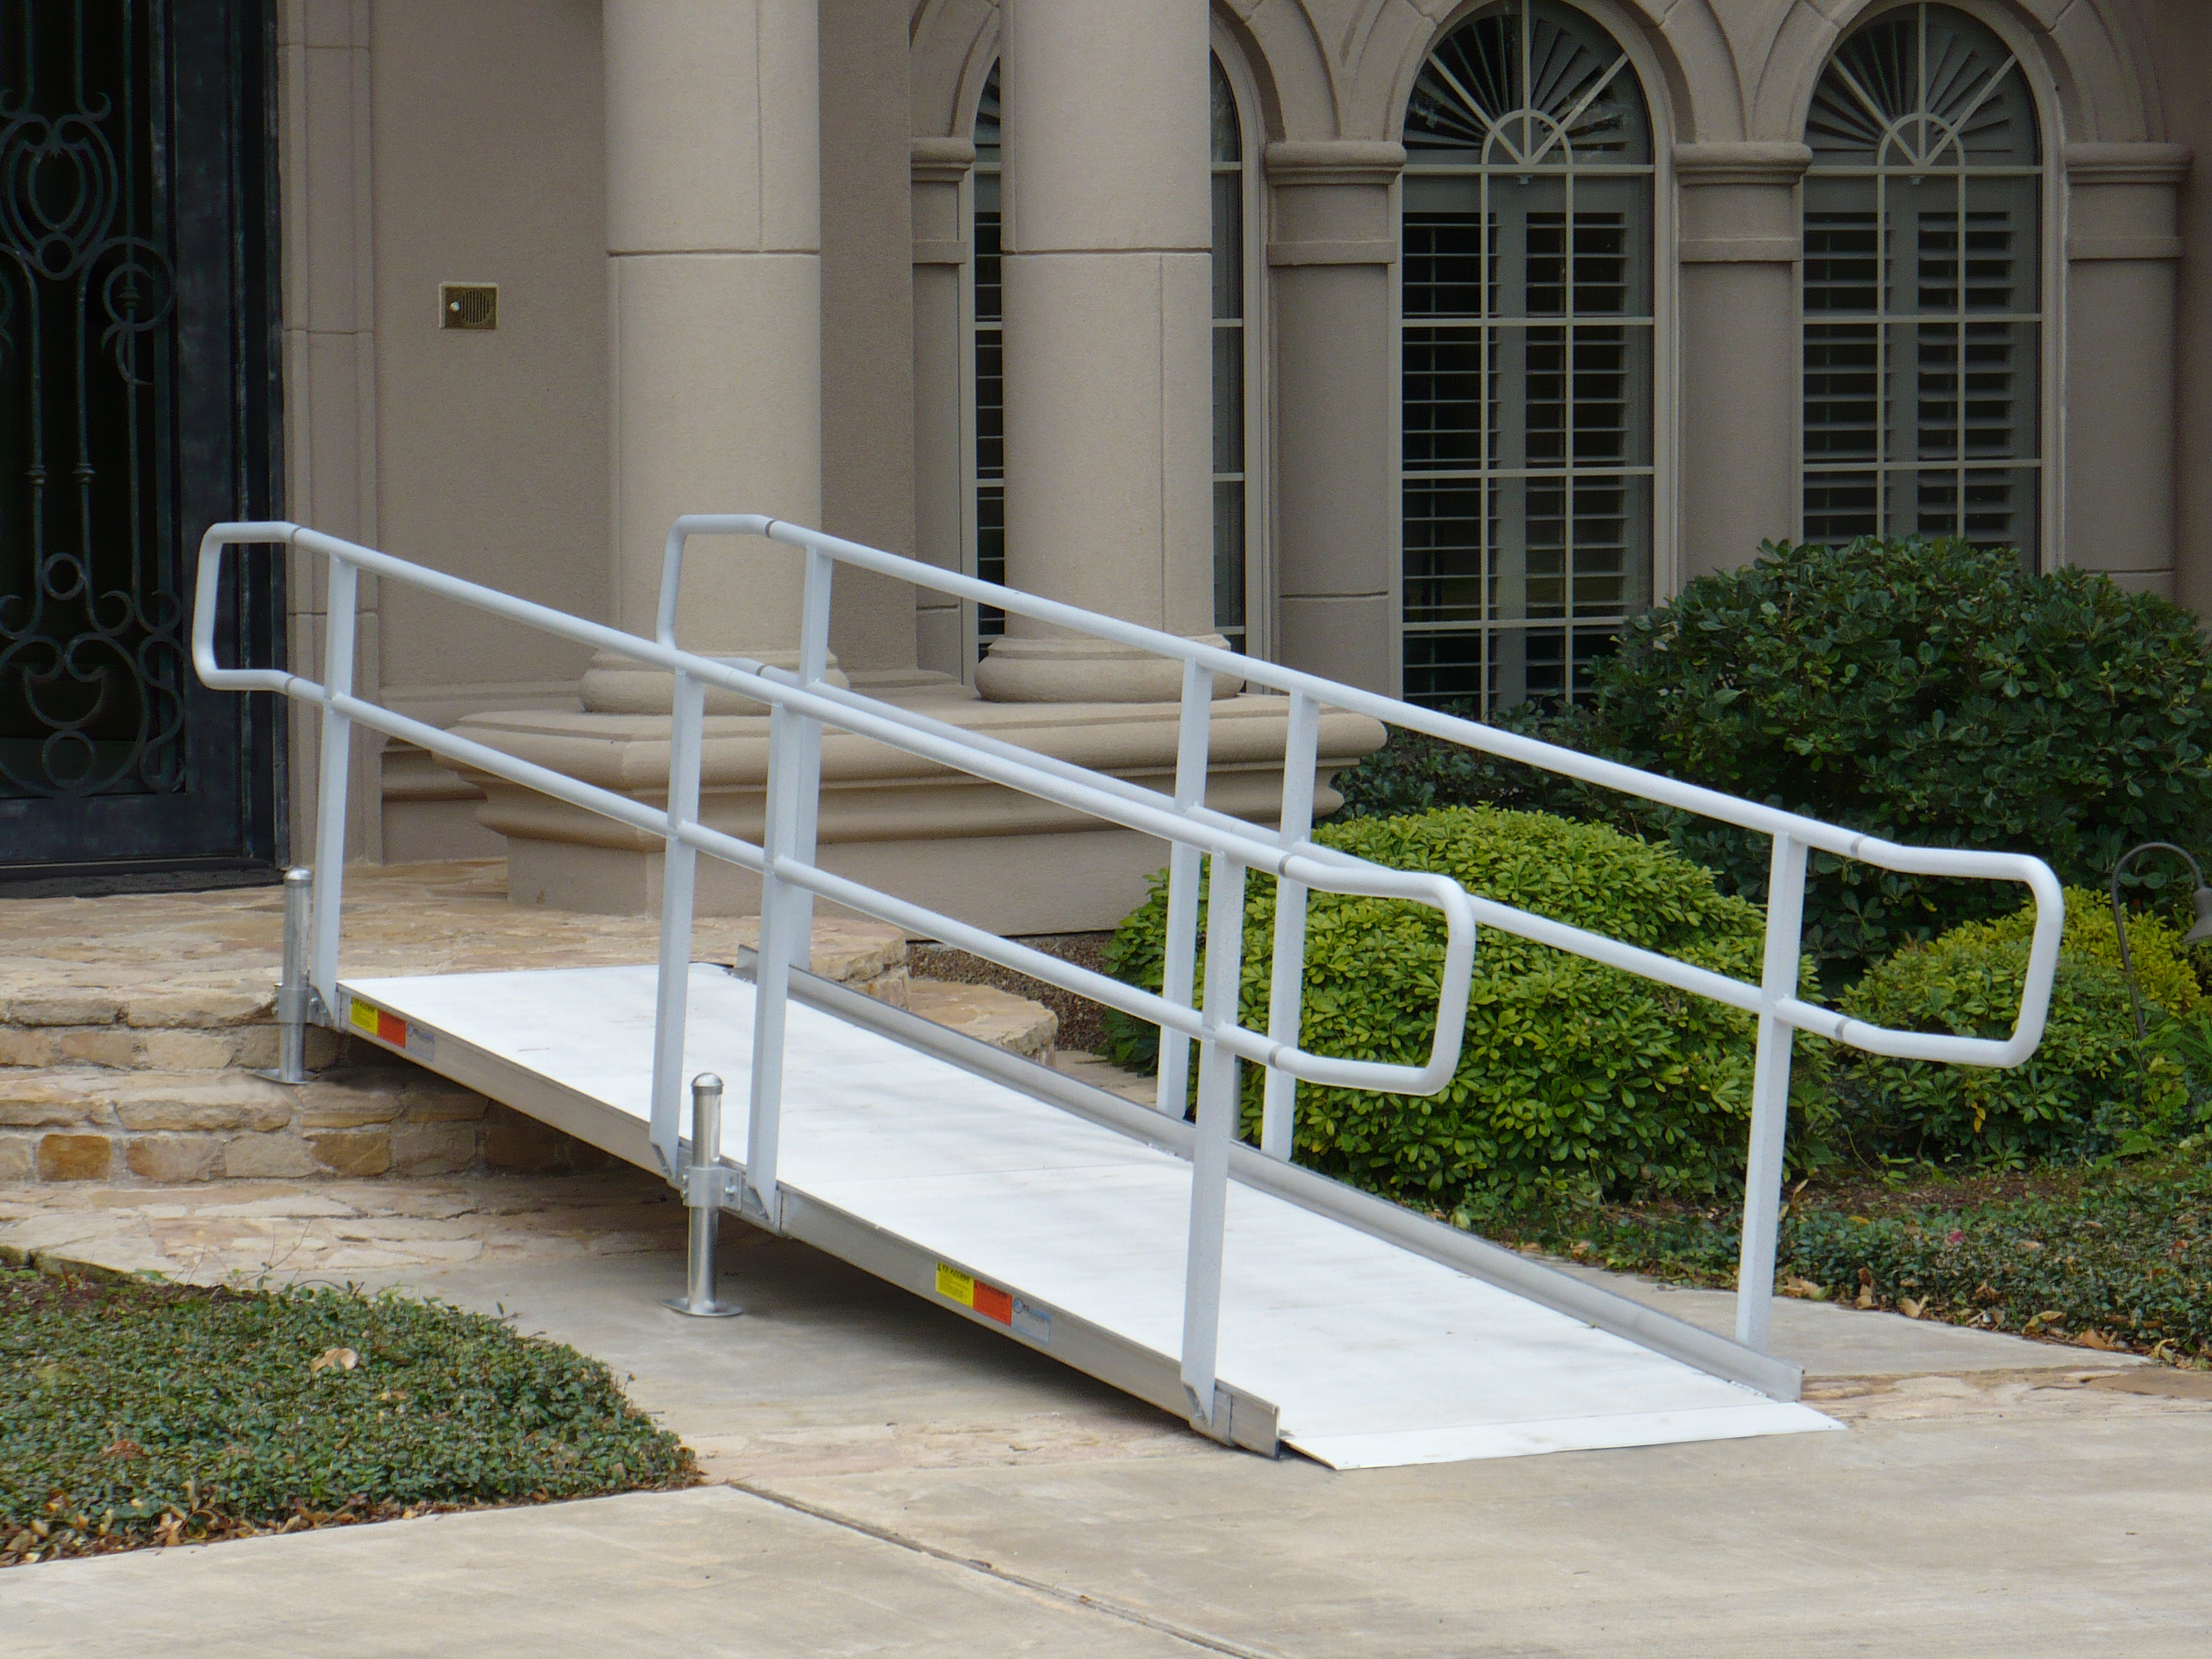 EZ Access Portable and Modular Wheelchair Ramps For Homes